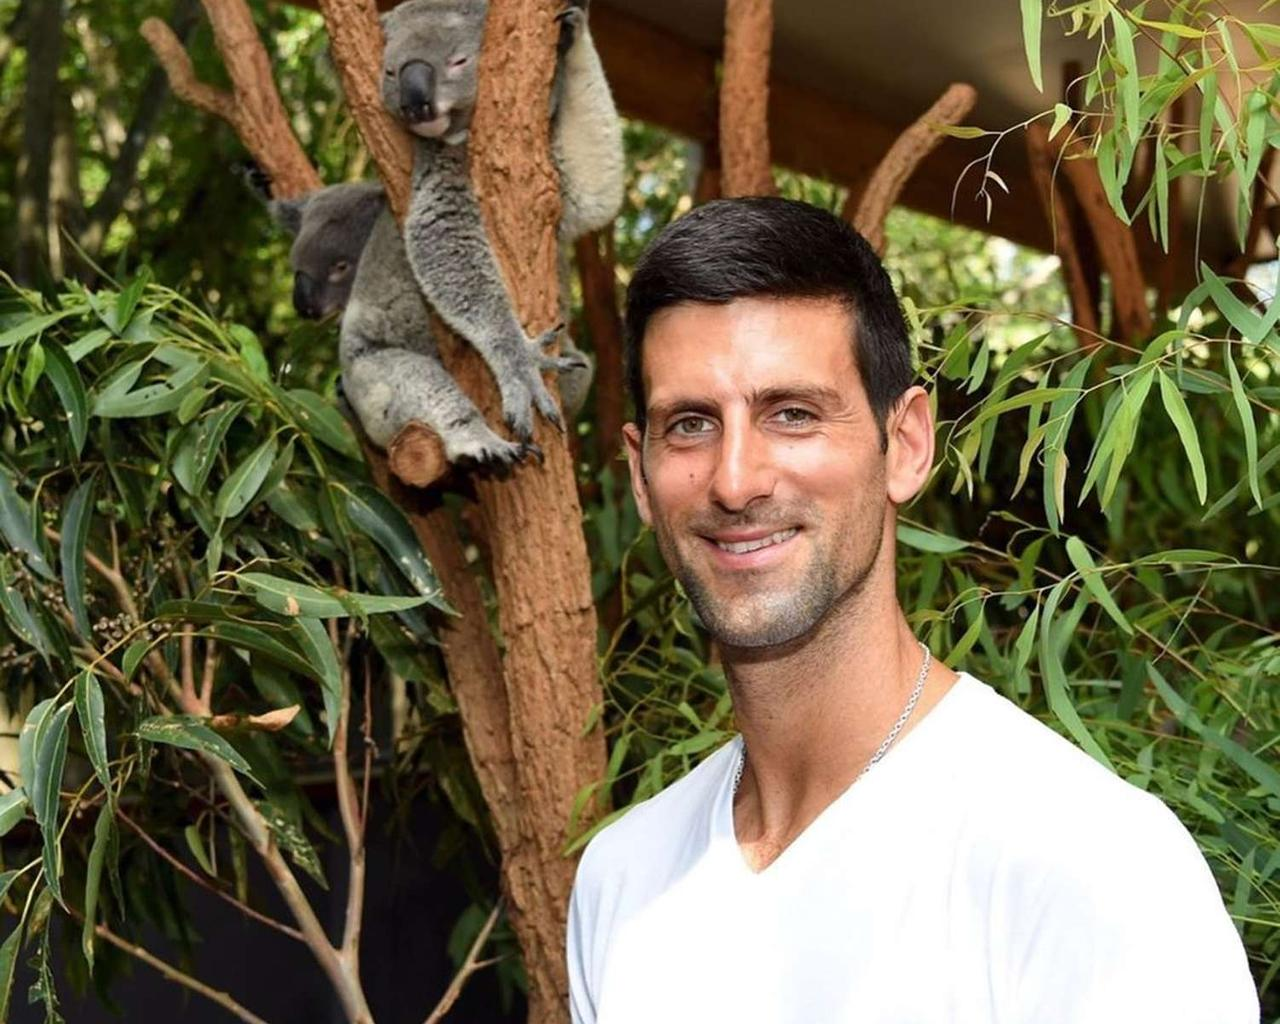 Novak Djokovic Concerned About Air Quality in Melbourne Amid Fires — Should Australian Open Be Postponed?